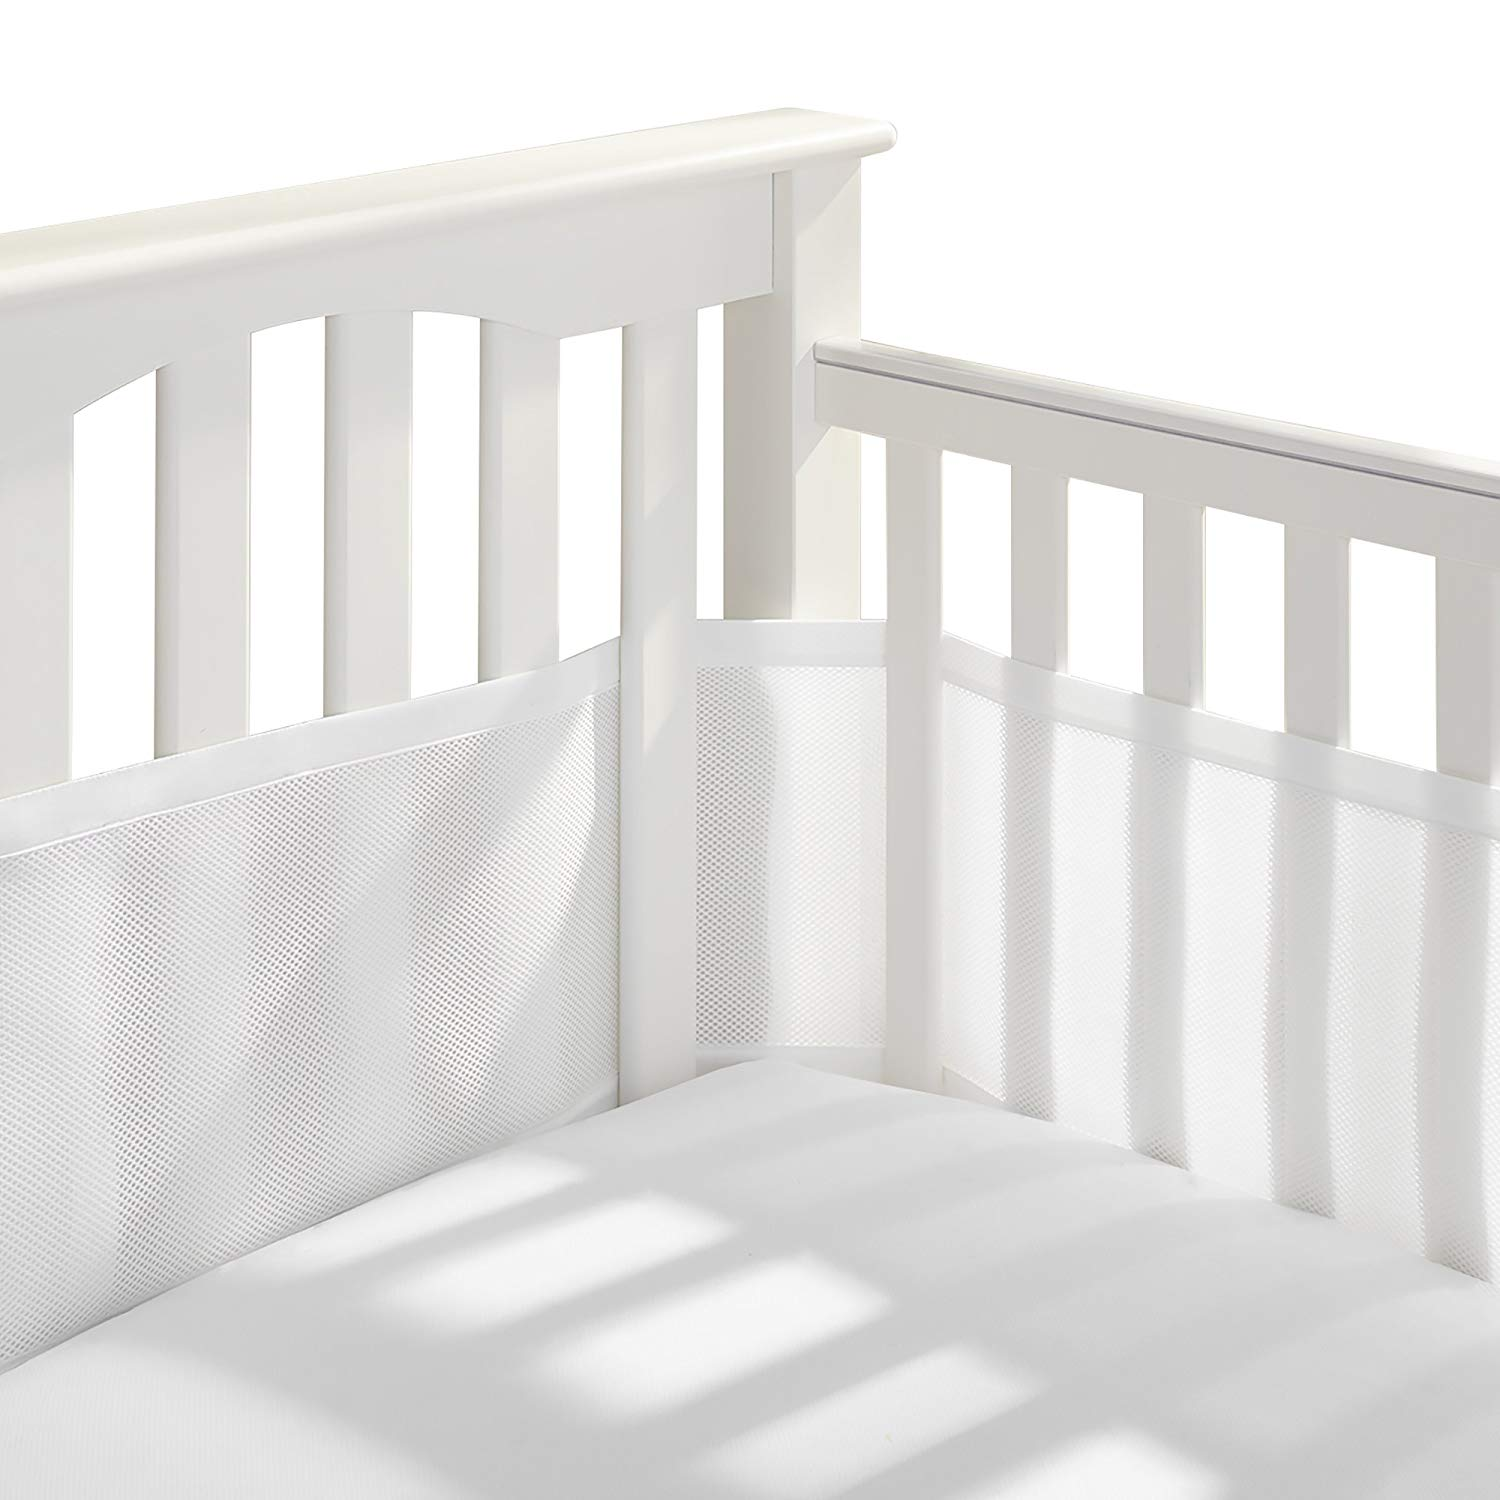 Traveller Location: Breathable Baby Breathable Mesh Crib Liner | Doctor Endorsed |  Prevents Babies from Getting Stuck in Crib Slats | Fits 4 Sided Slatted &  Solid